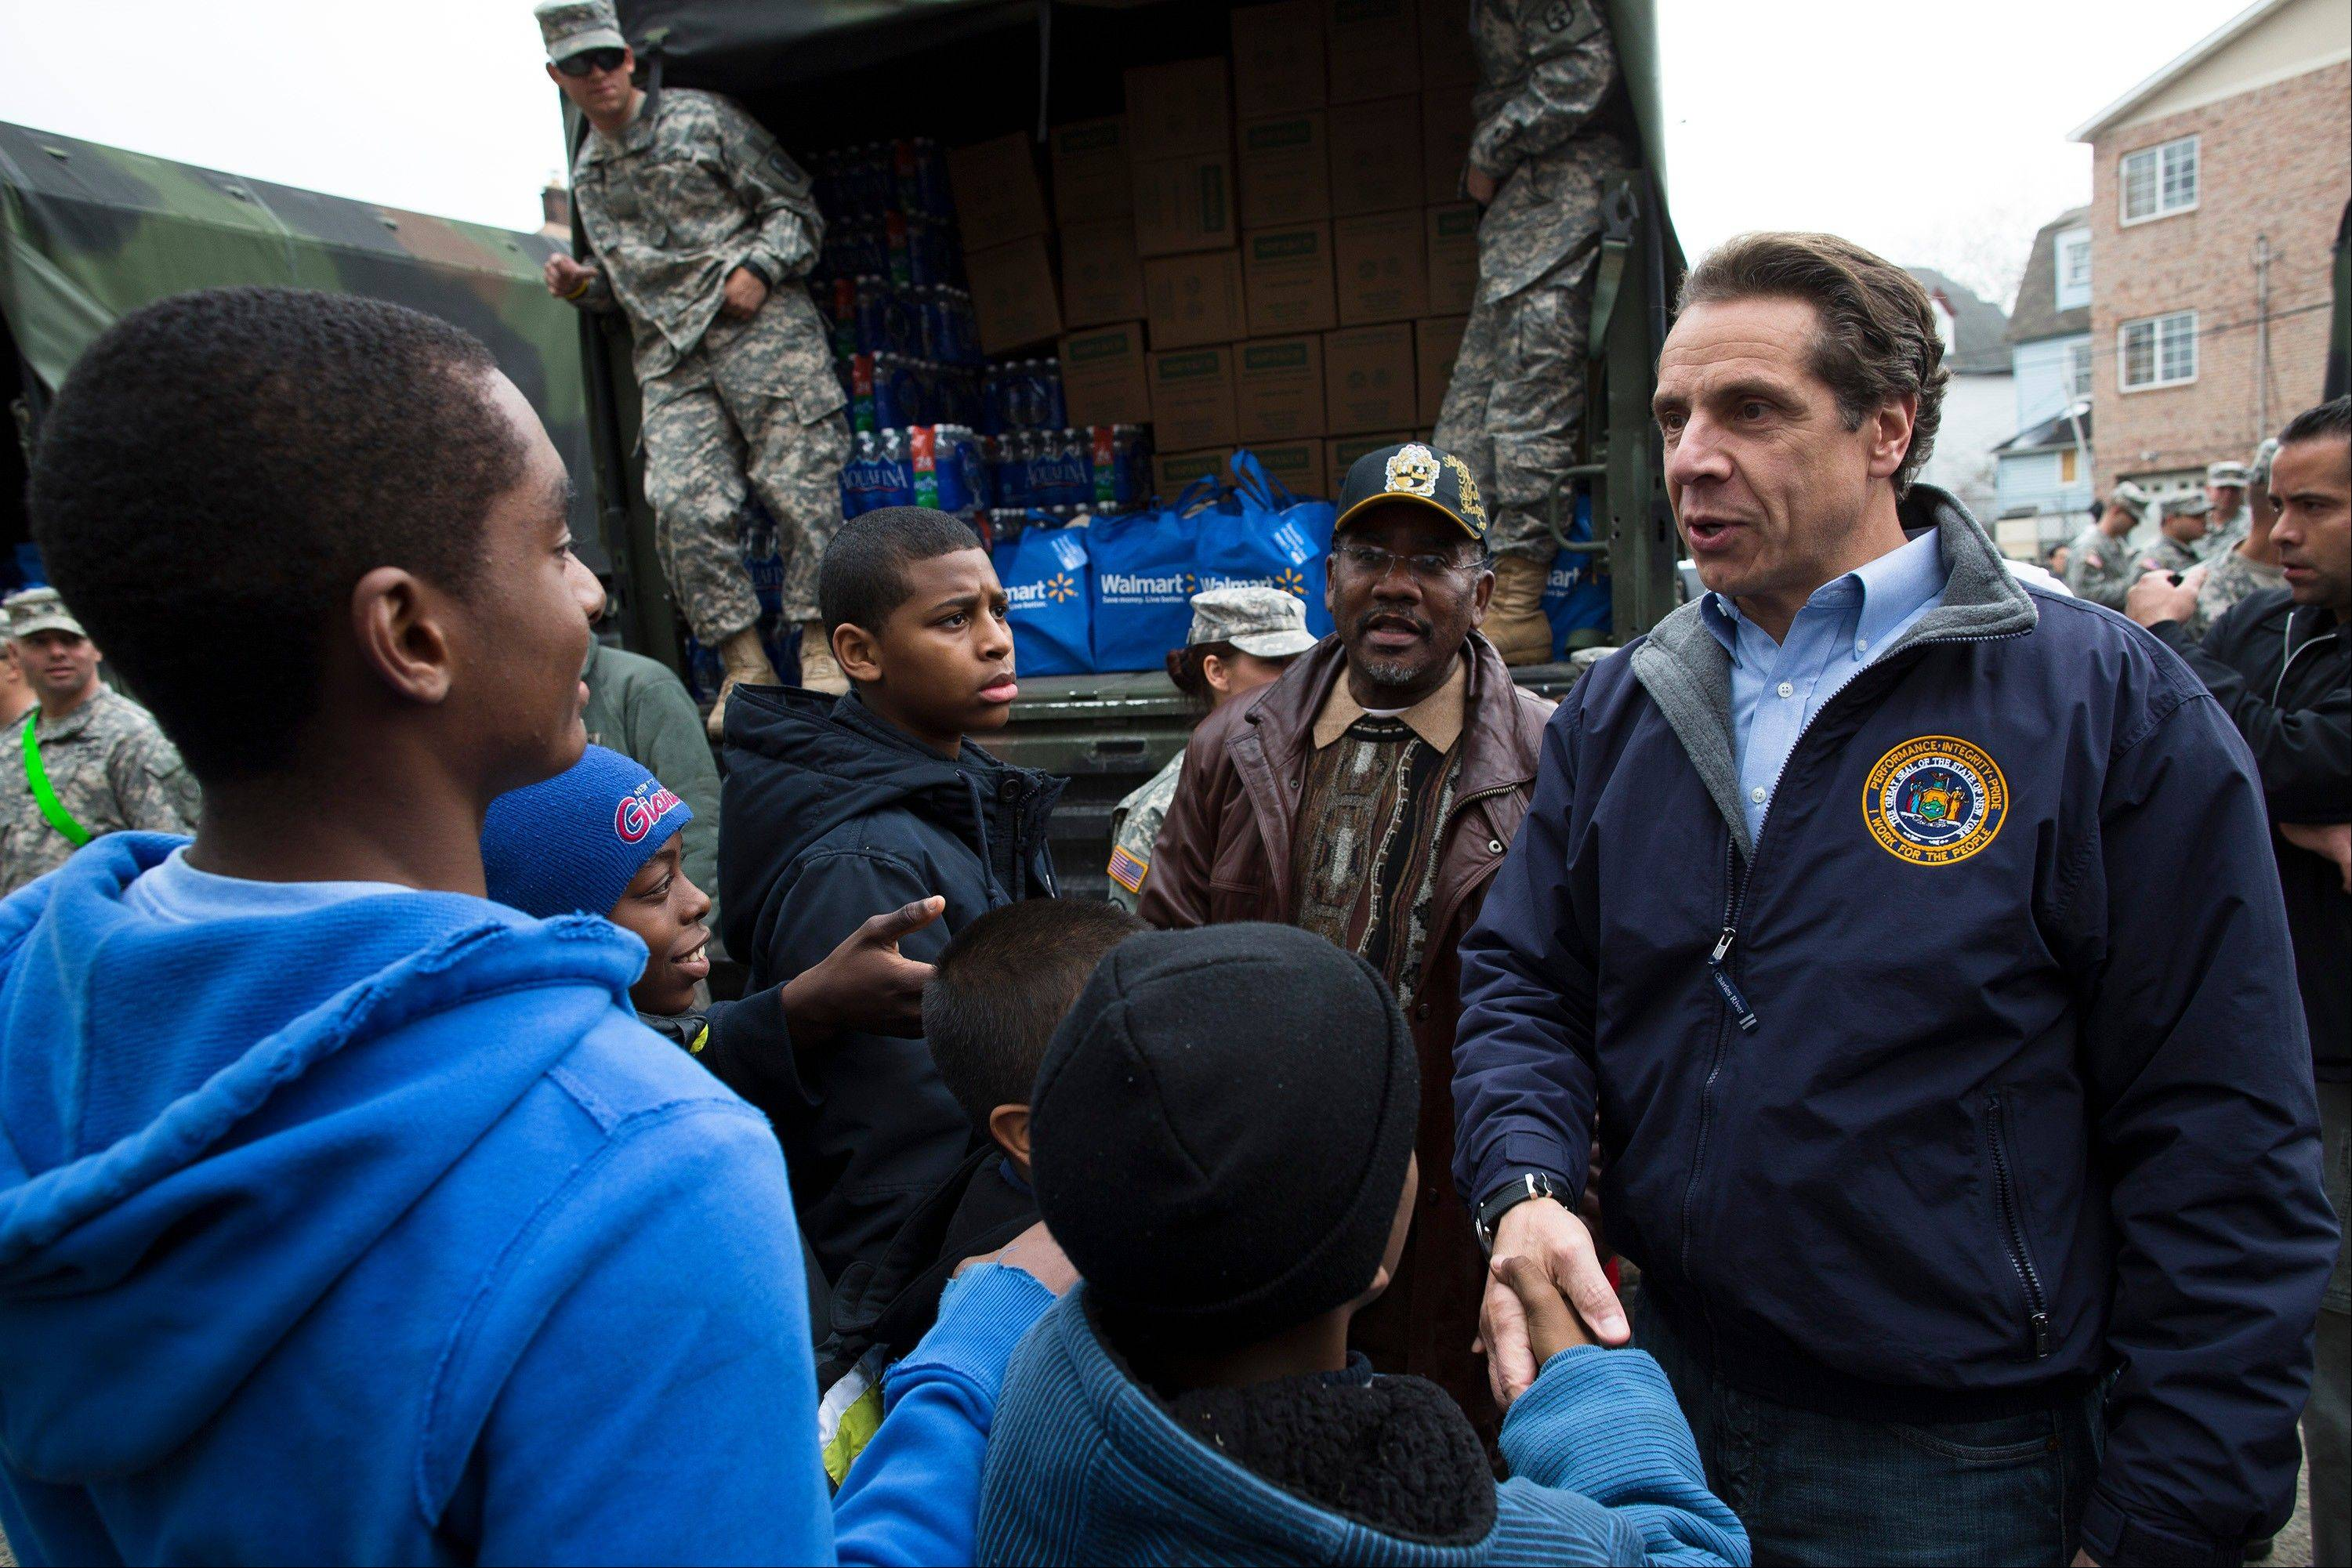 New York Governor Andrew Cuomo greets residents of the Far Rockaways section of the Queens borough of New York, Saturday. An administration official says Gov. Andrew Cuomo plans to request at least $30 billion in federal disaster aid to rebuild after Superstorm Sandy.